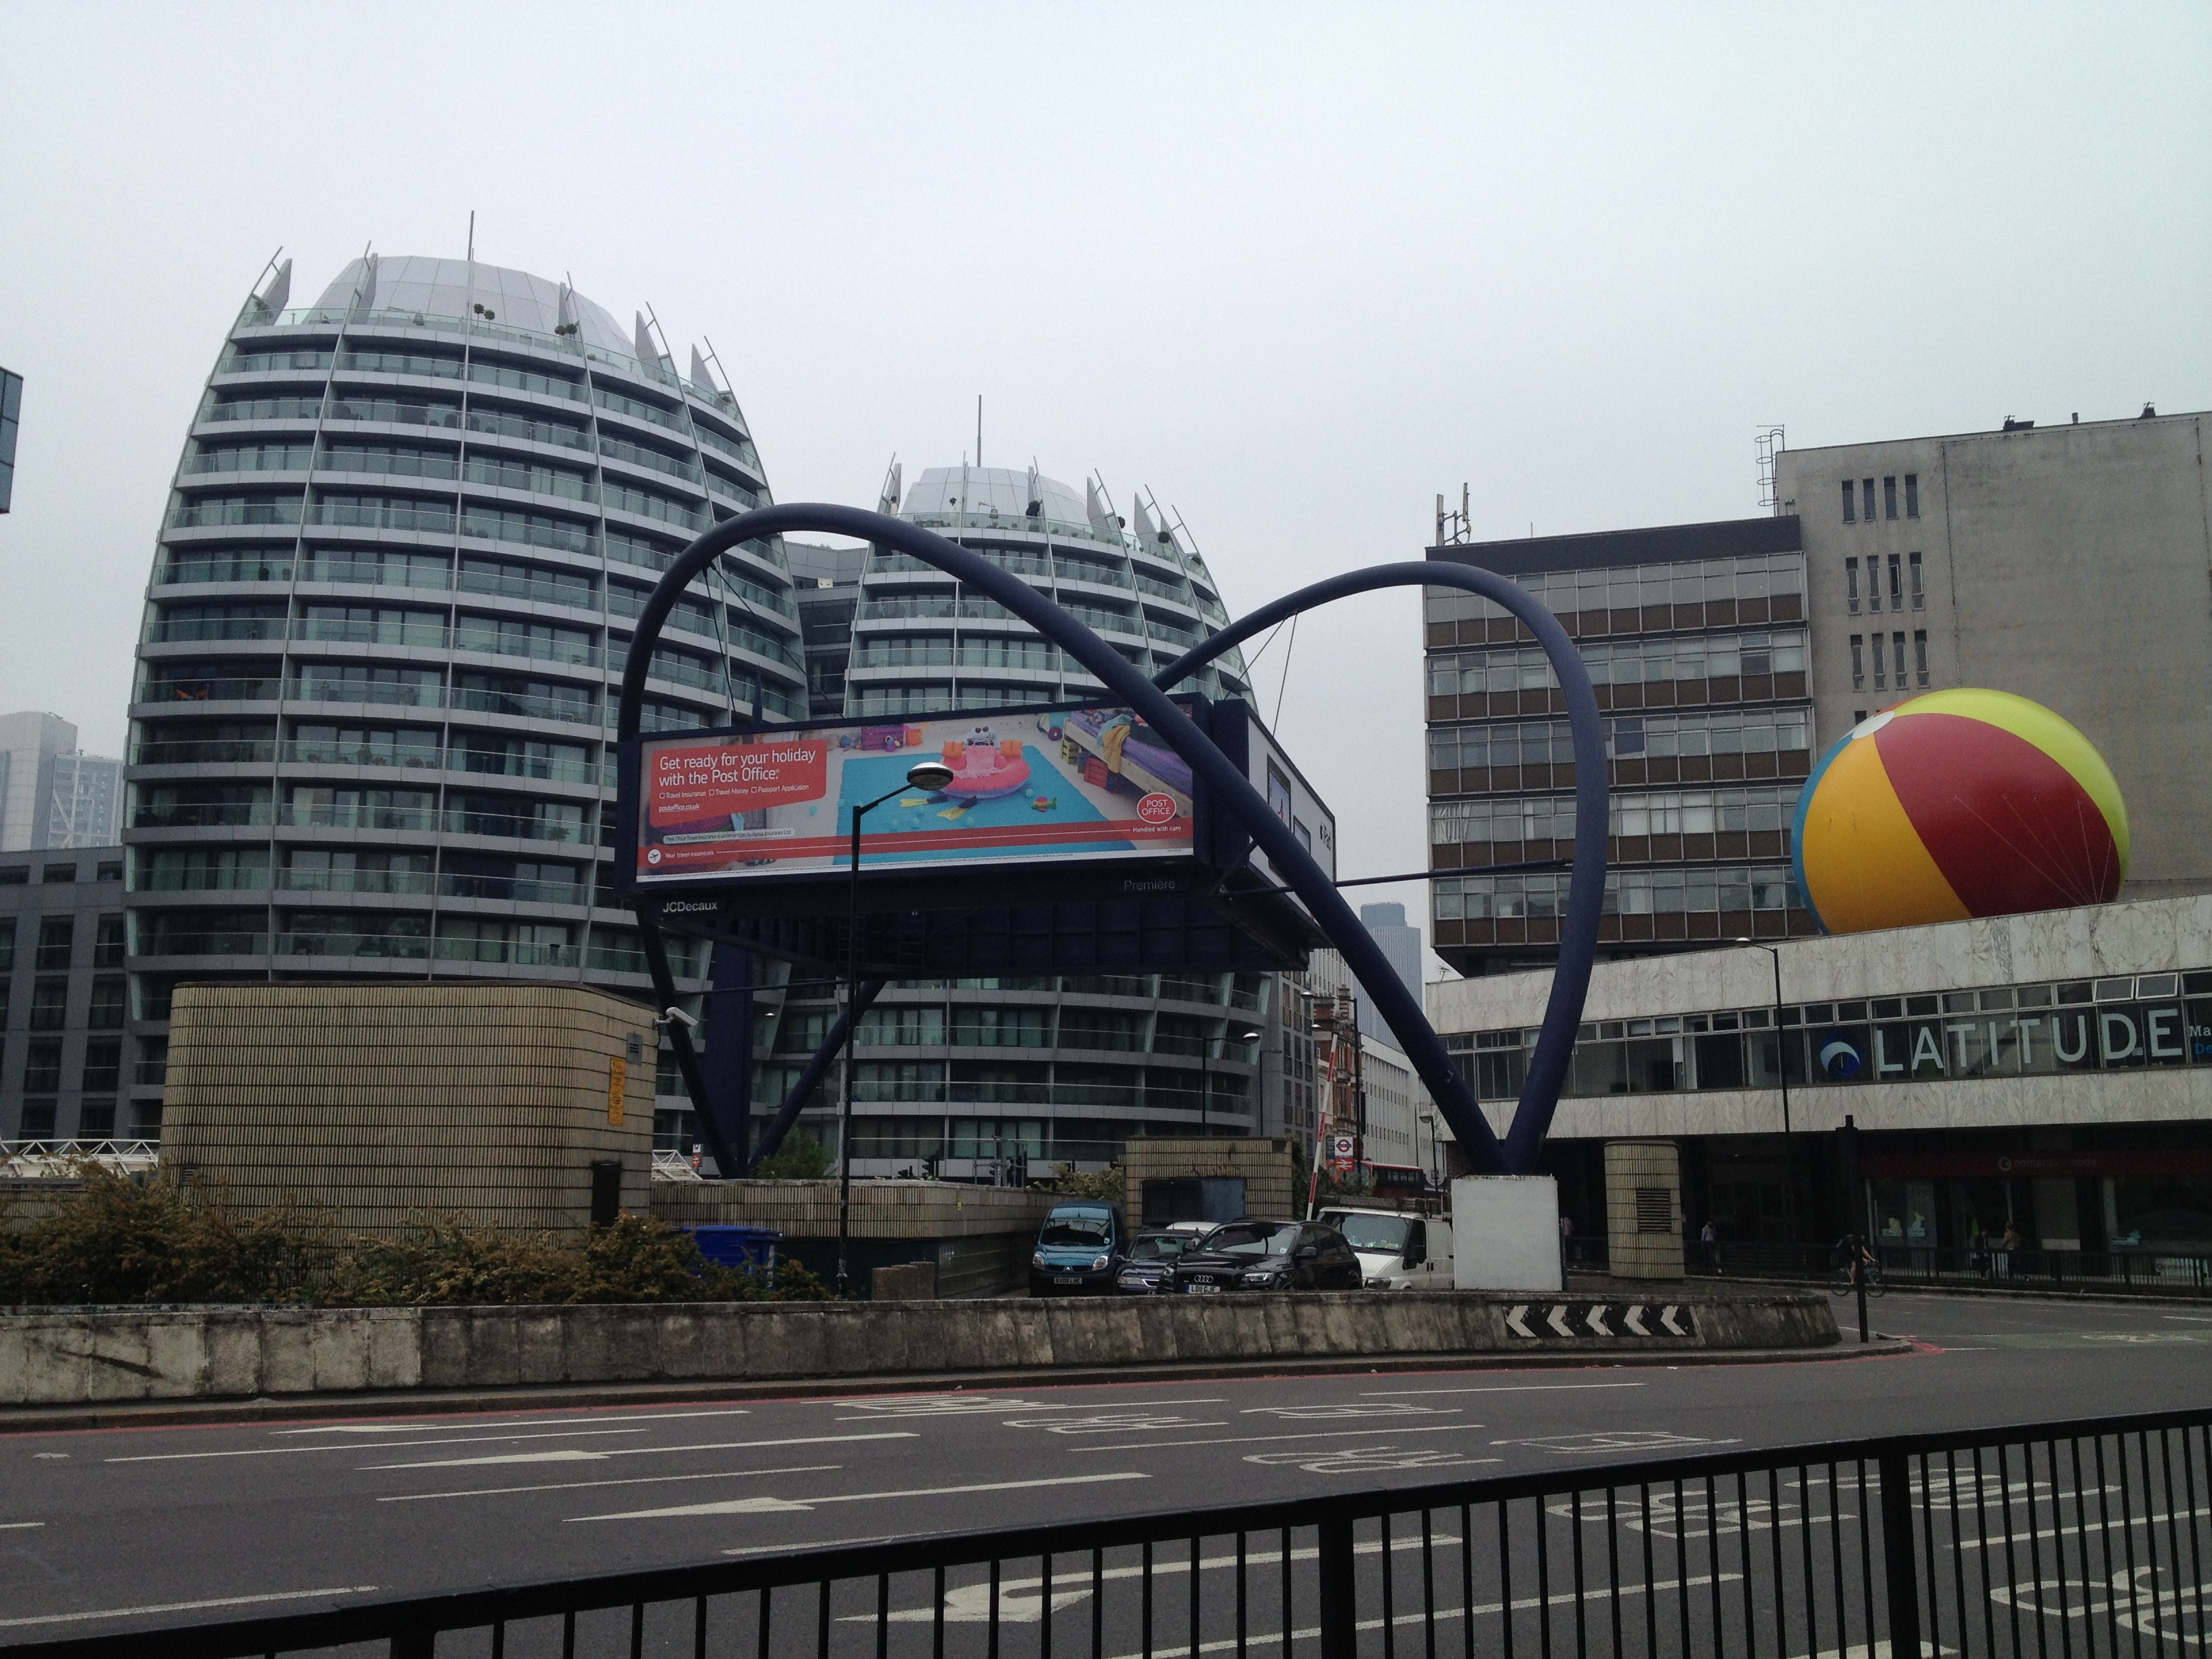 The official Silicon Roundabout, which was originally coined as a joke.